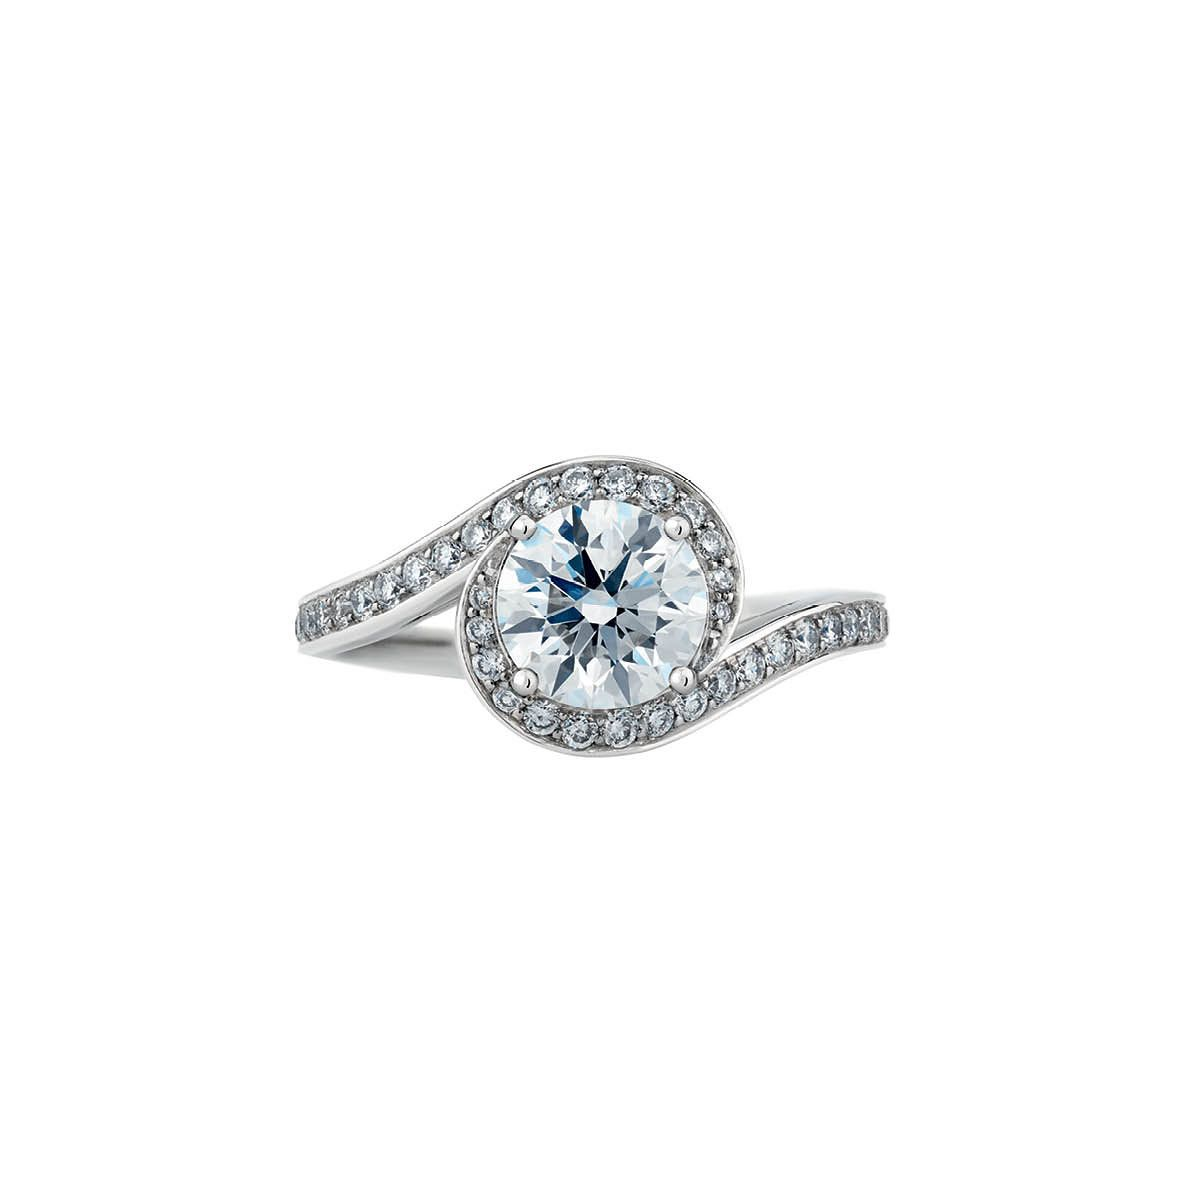 De beers caress diamond ring price upon requestfor information